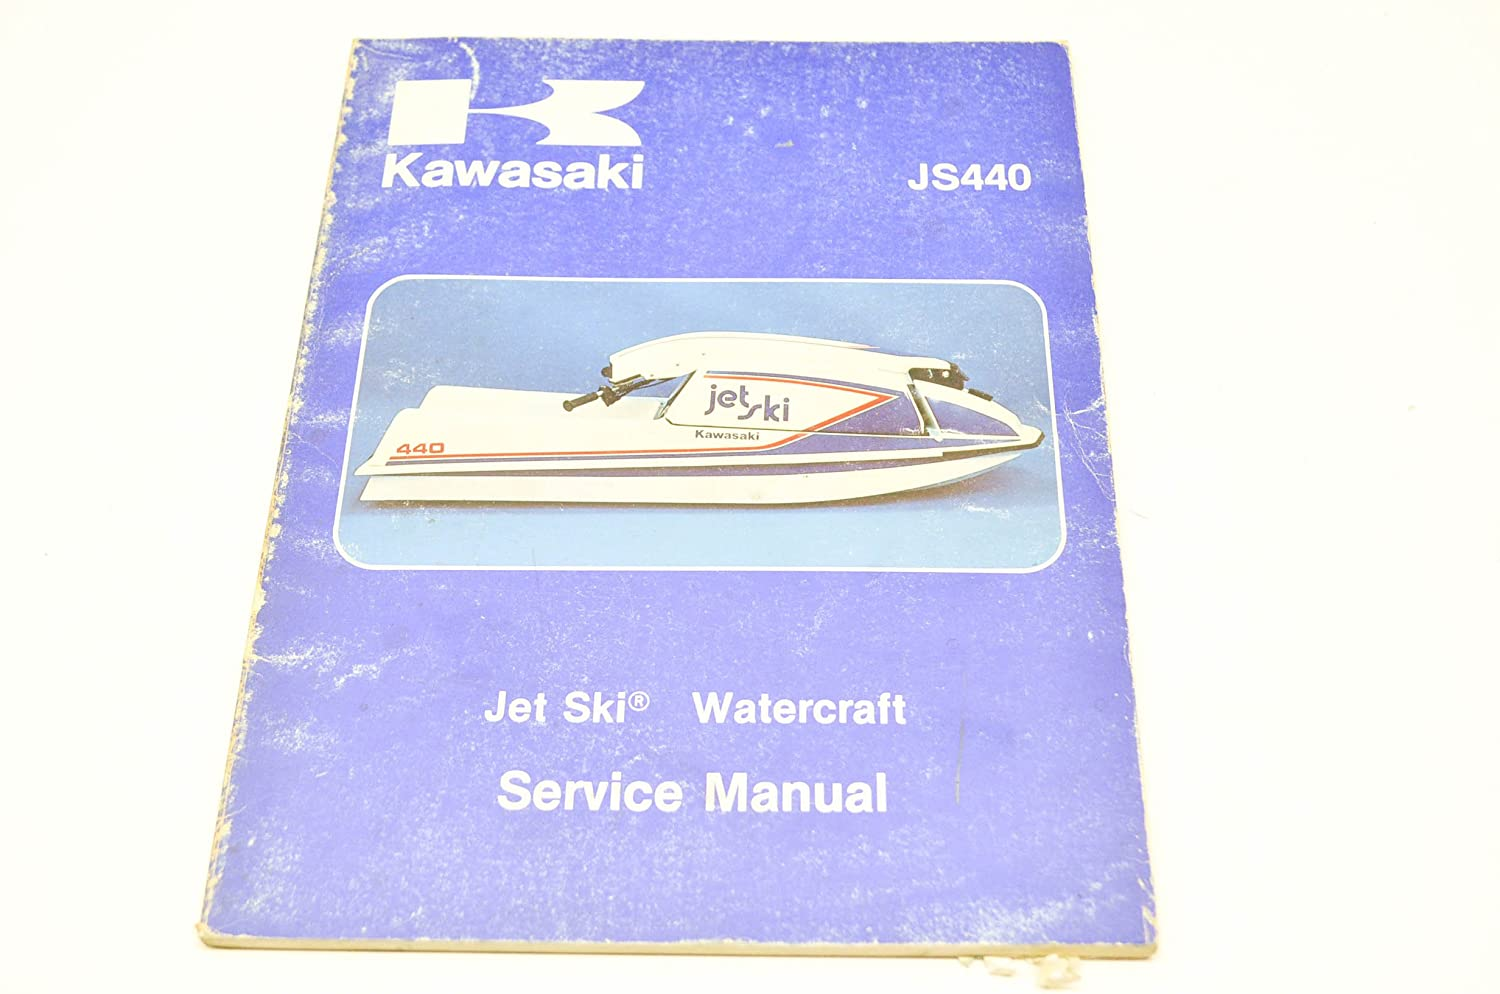 Amazon.com: Kawasaki 99963-0001-05 Jet Ski Watercraft Service Manual JS440.  QTY 1: Automotive